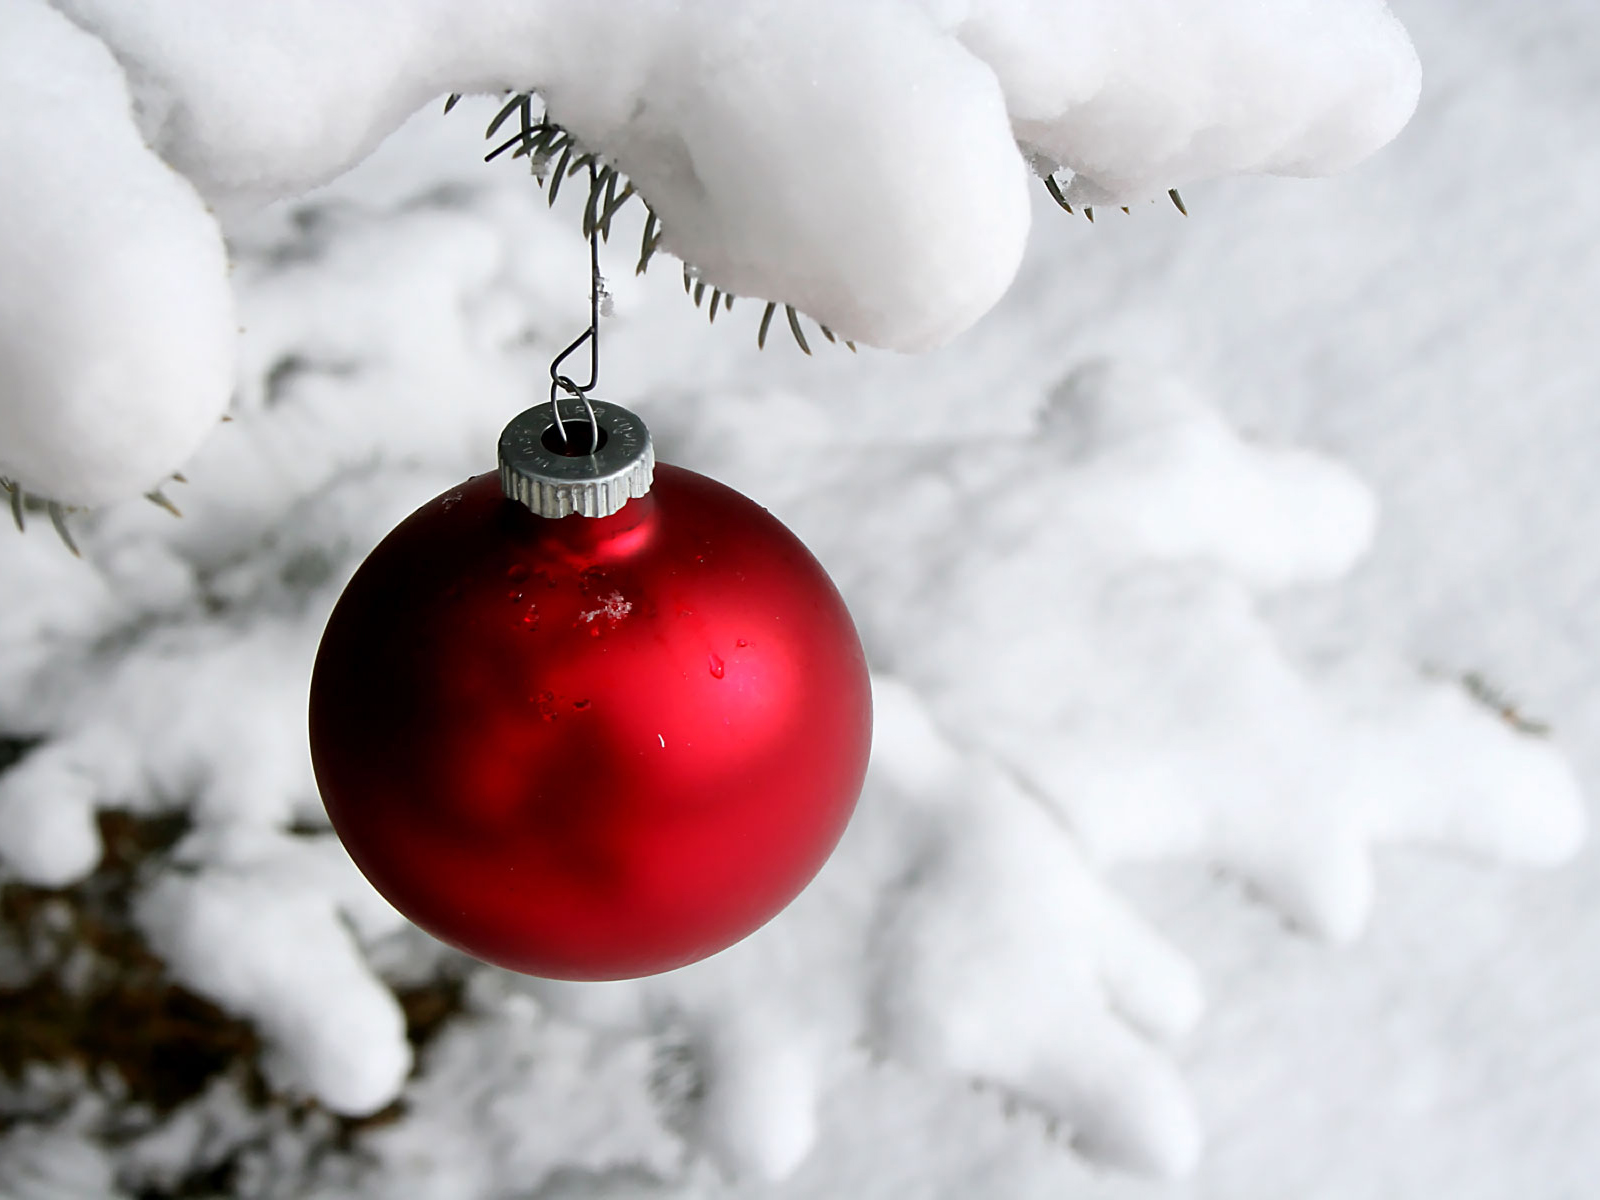 Download Christmas HD Wallpaper Background Picture christmas ball ...